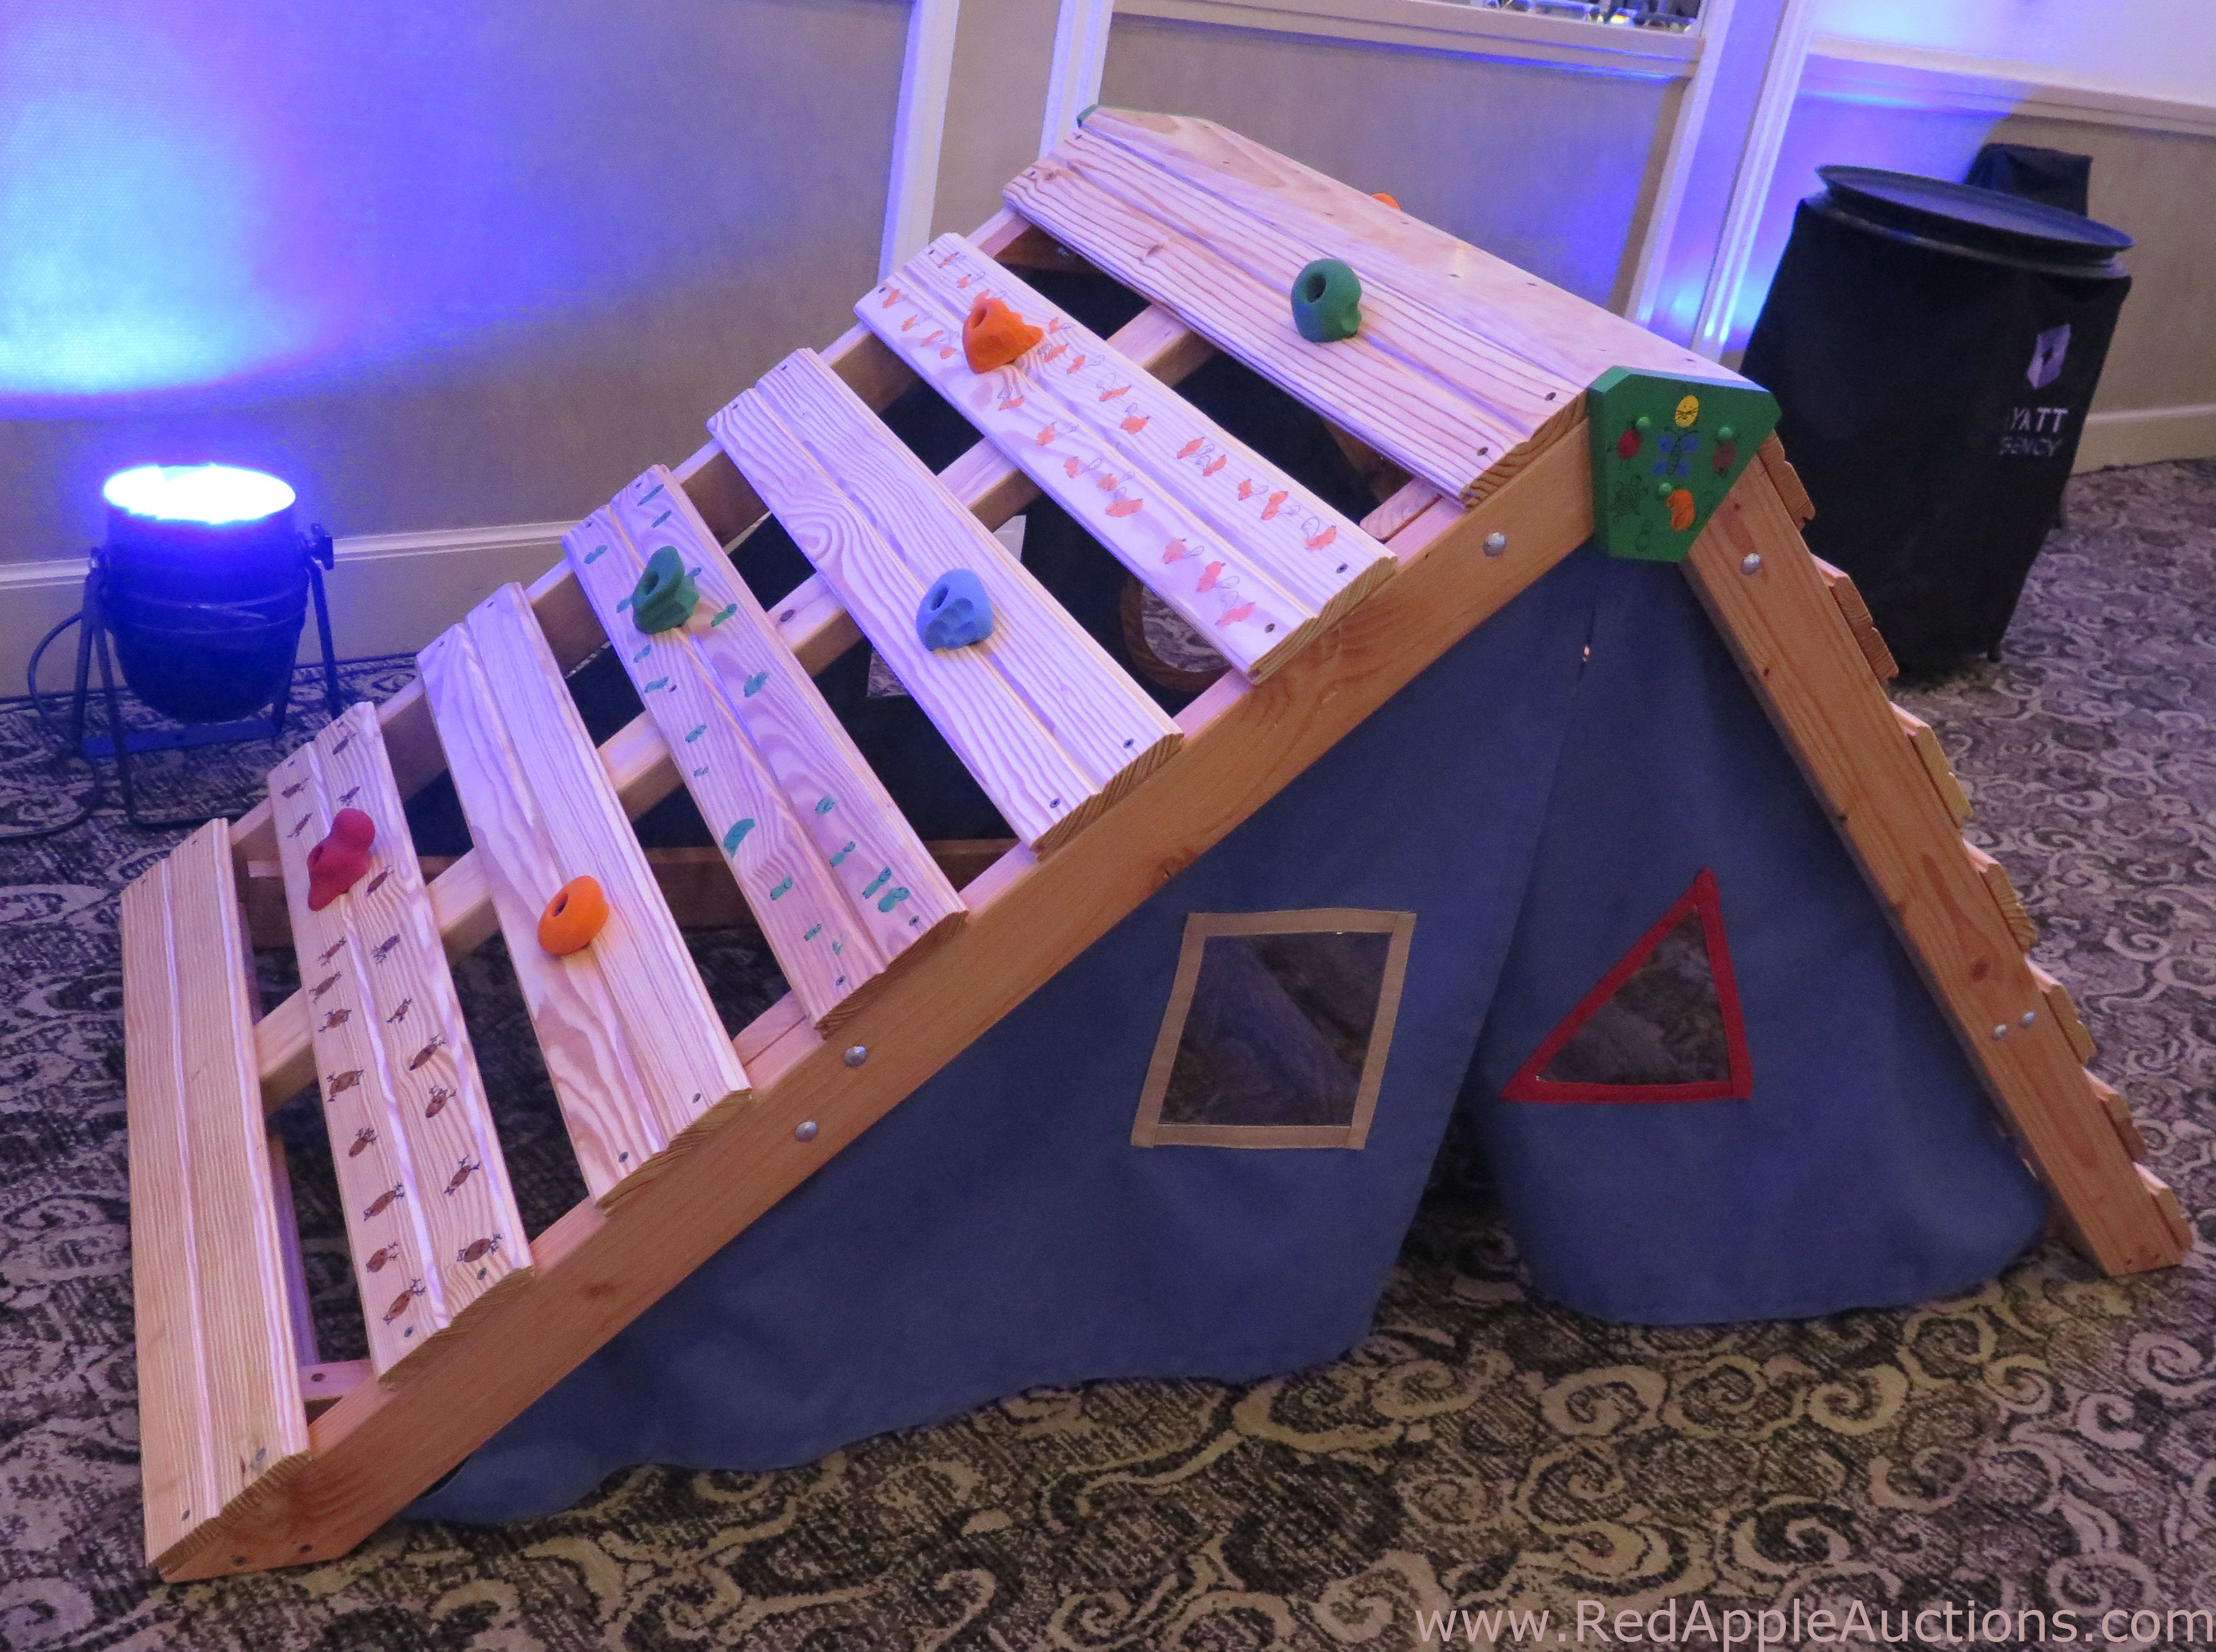 Wood pallet idea A climber and hideaway tent for toddlers. : hideaway tent - memphite.com